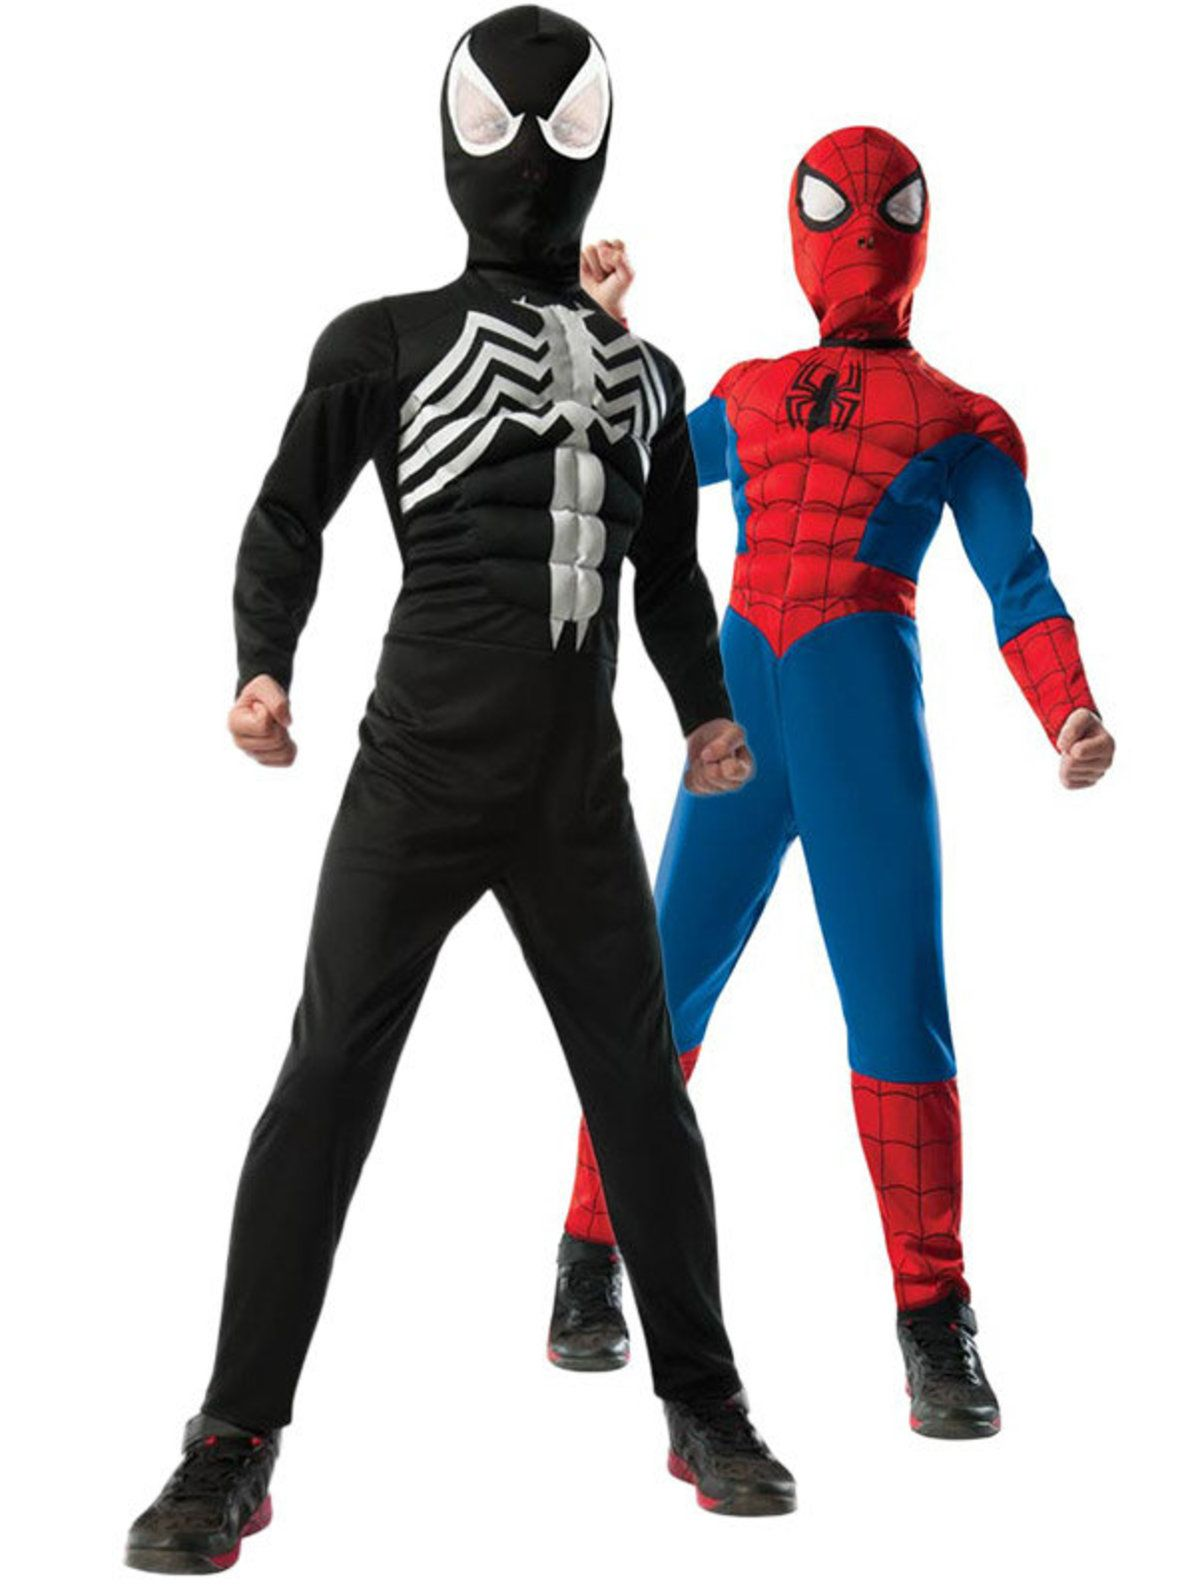 2-1 Ultimate Reversible Spiderman Boys Costume - Spiderman costume